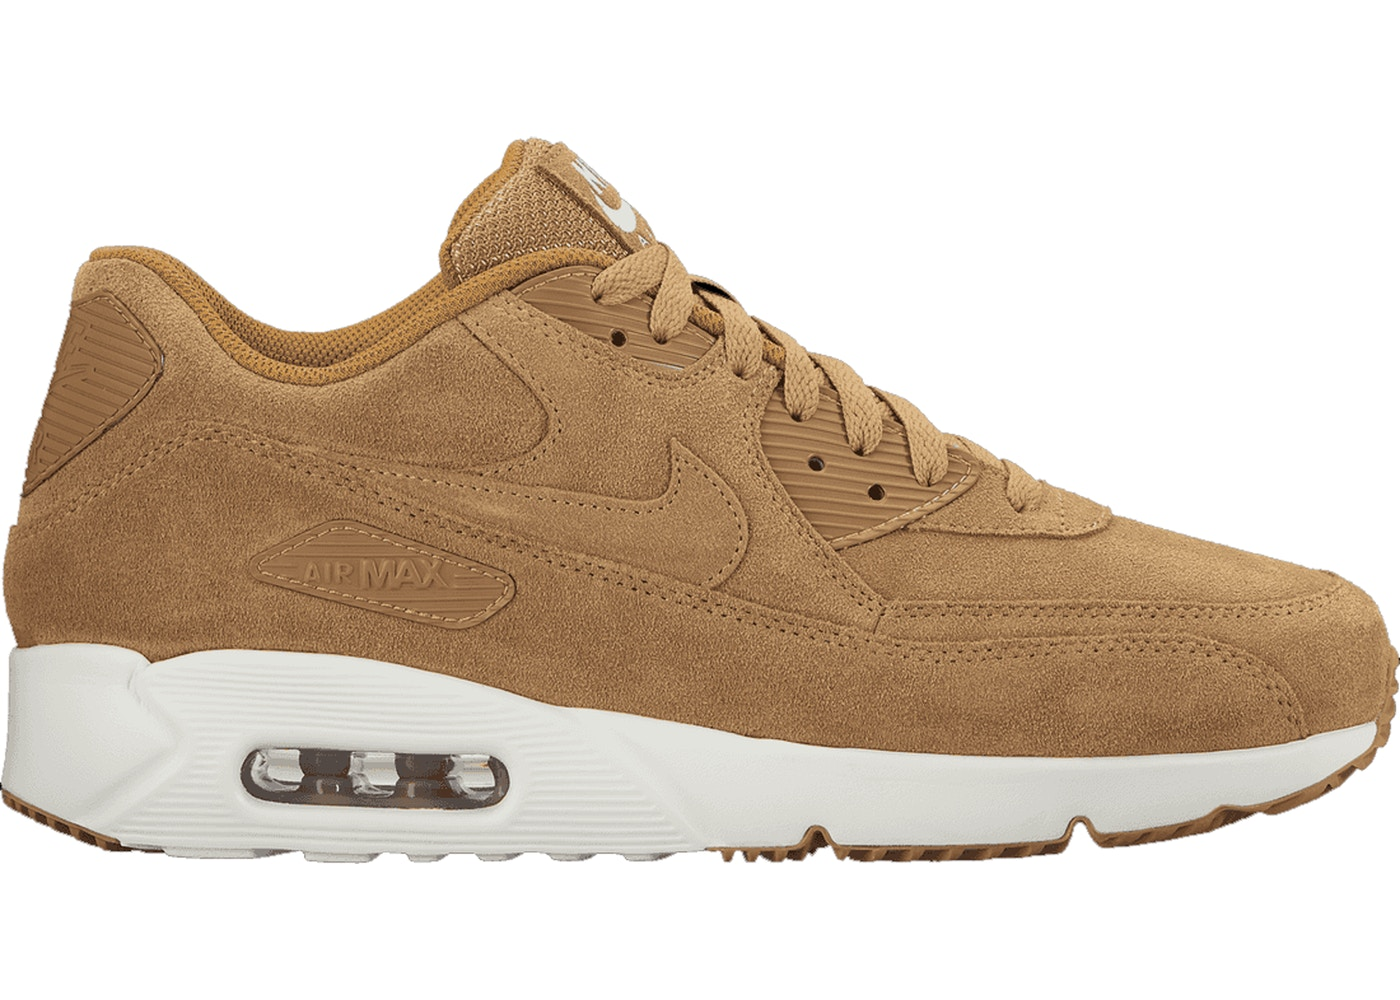 sale retailer 8300a 39ea9 Air Max 90 Ultra 2.0 Flax (2017) - 924447-200